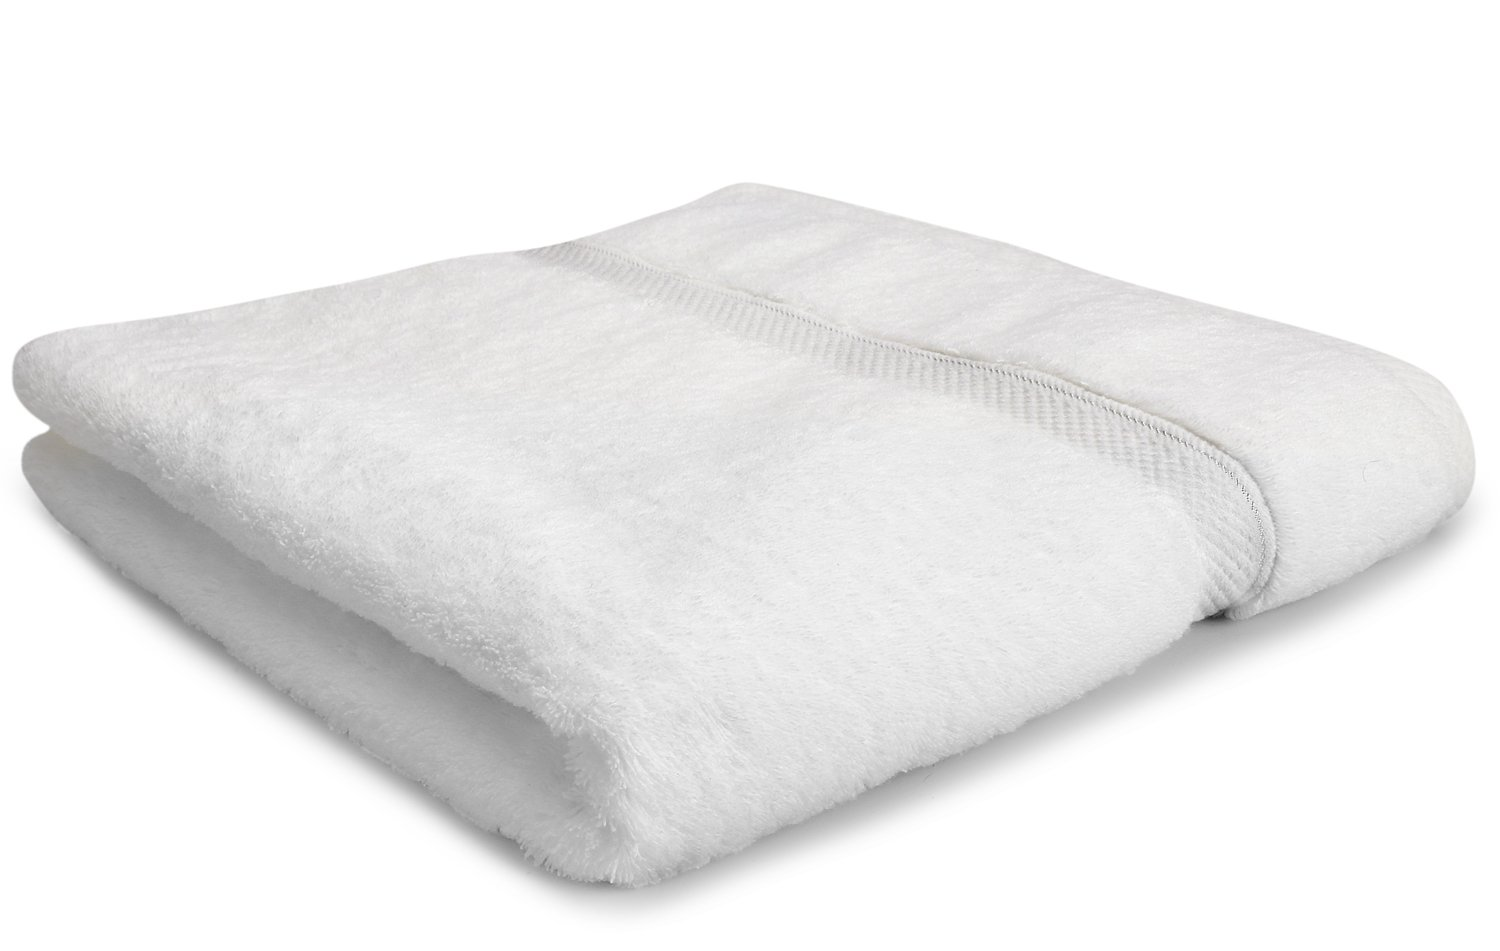 Amazon.com: Luxury Bath Towels By Cozy Homery - White - 100% Organic Natural Egyptian Cotton 650 GSM - Multipurpose Use for Bathroom, pool, ...